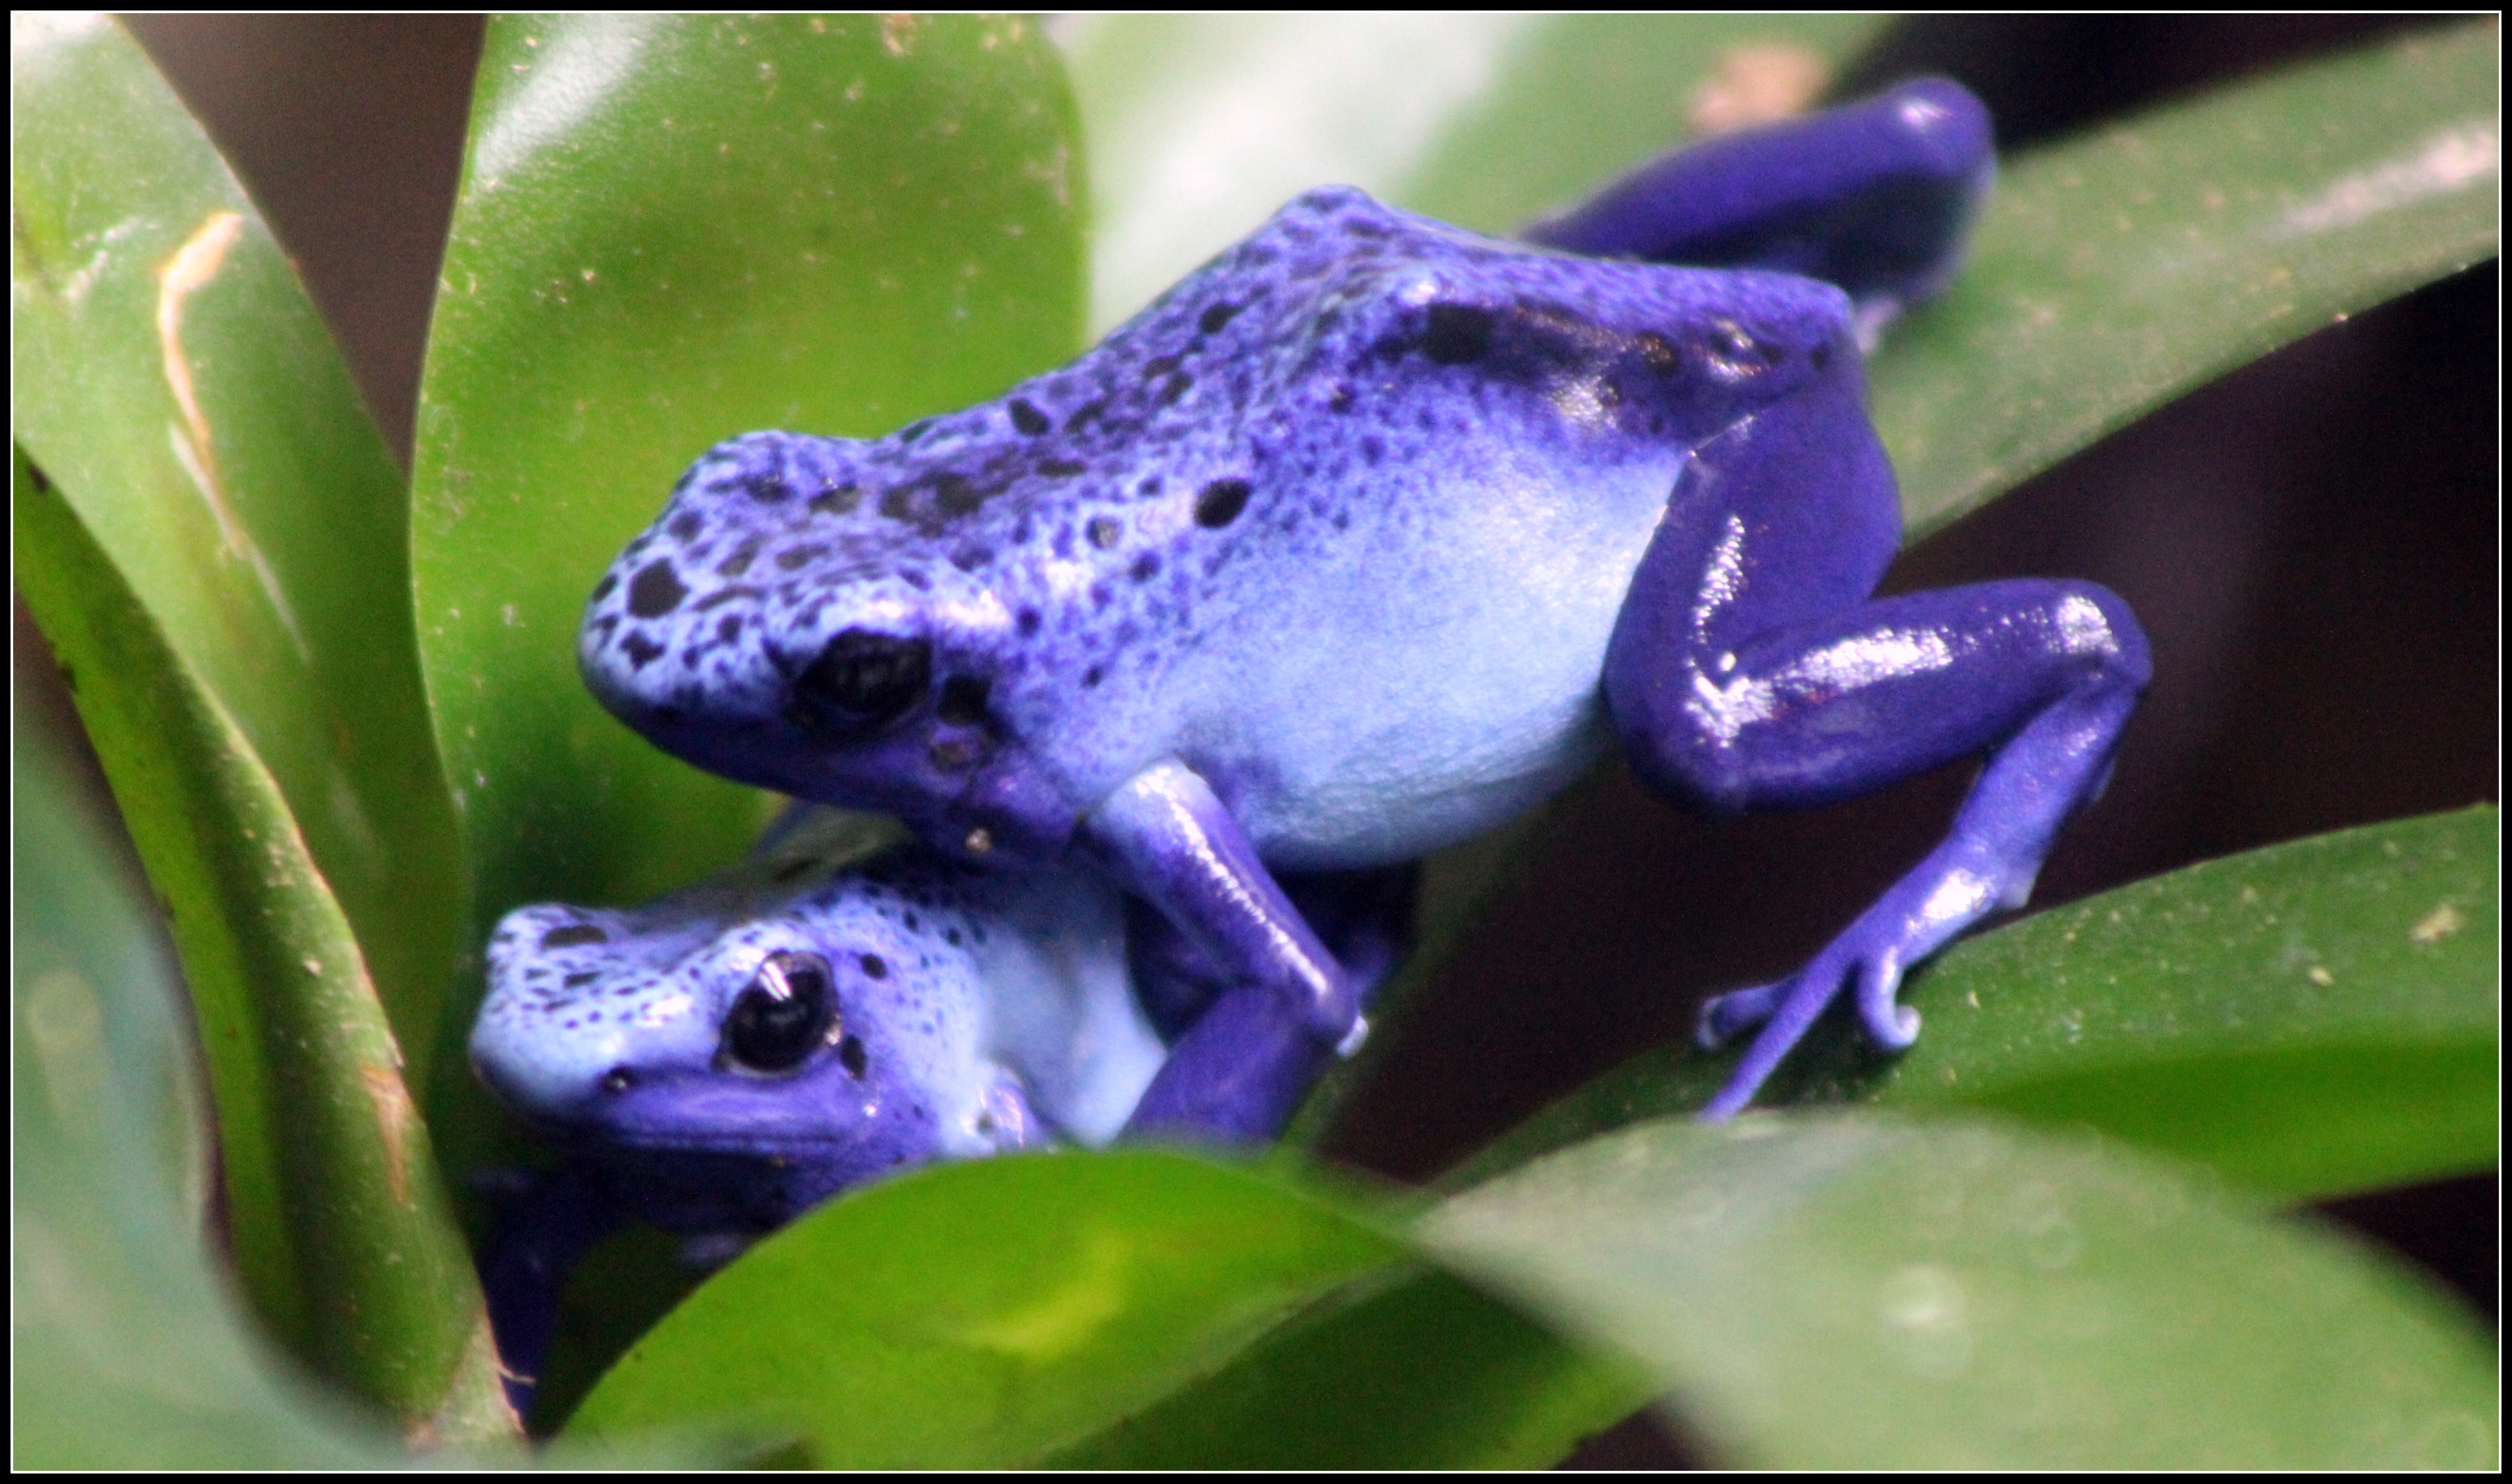 frog dating website An online dating website can give people the opportunity to share their stories, but you want to be careful heads up a common scam involves a tragic or sad story that makes you feel sorry for the person.